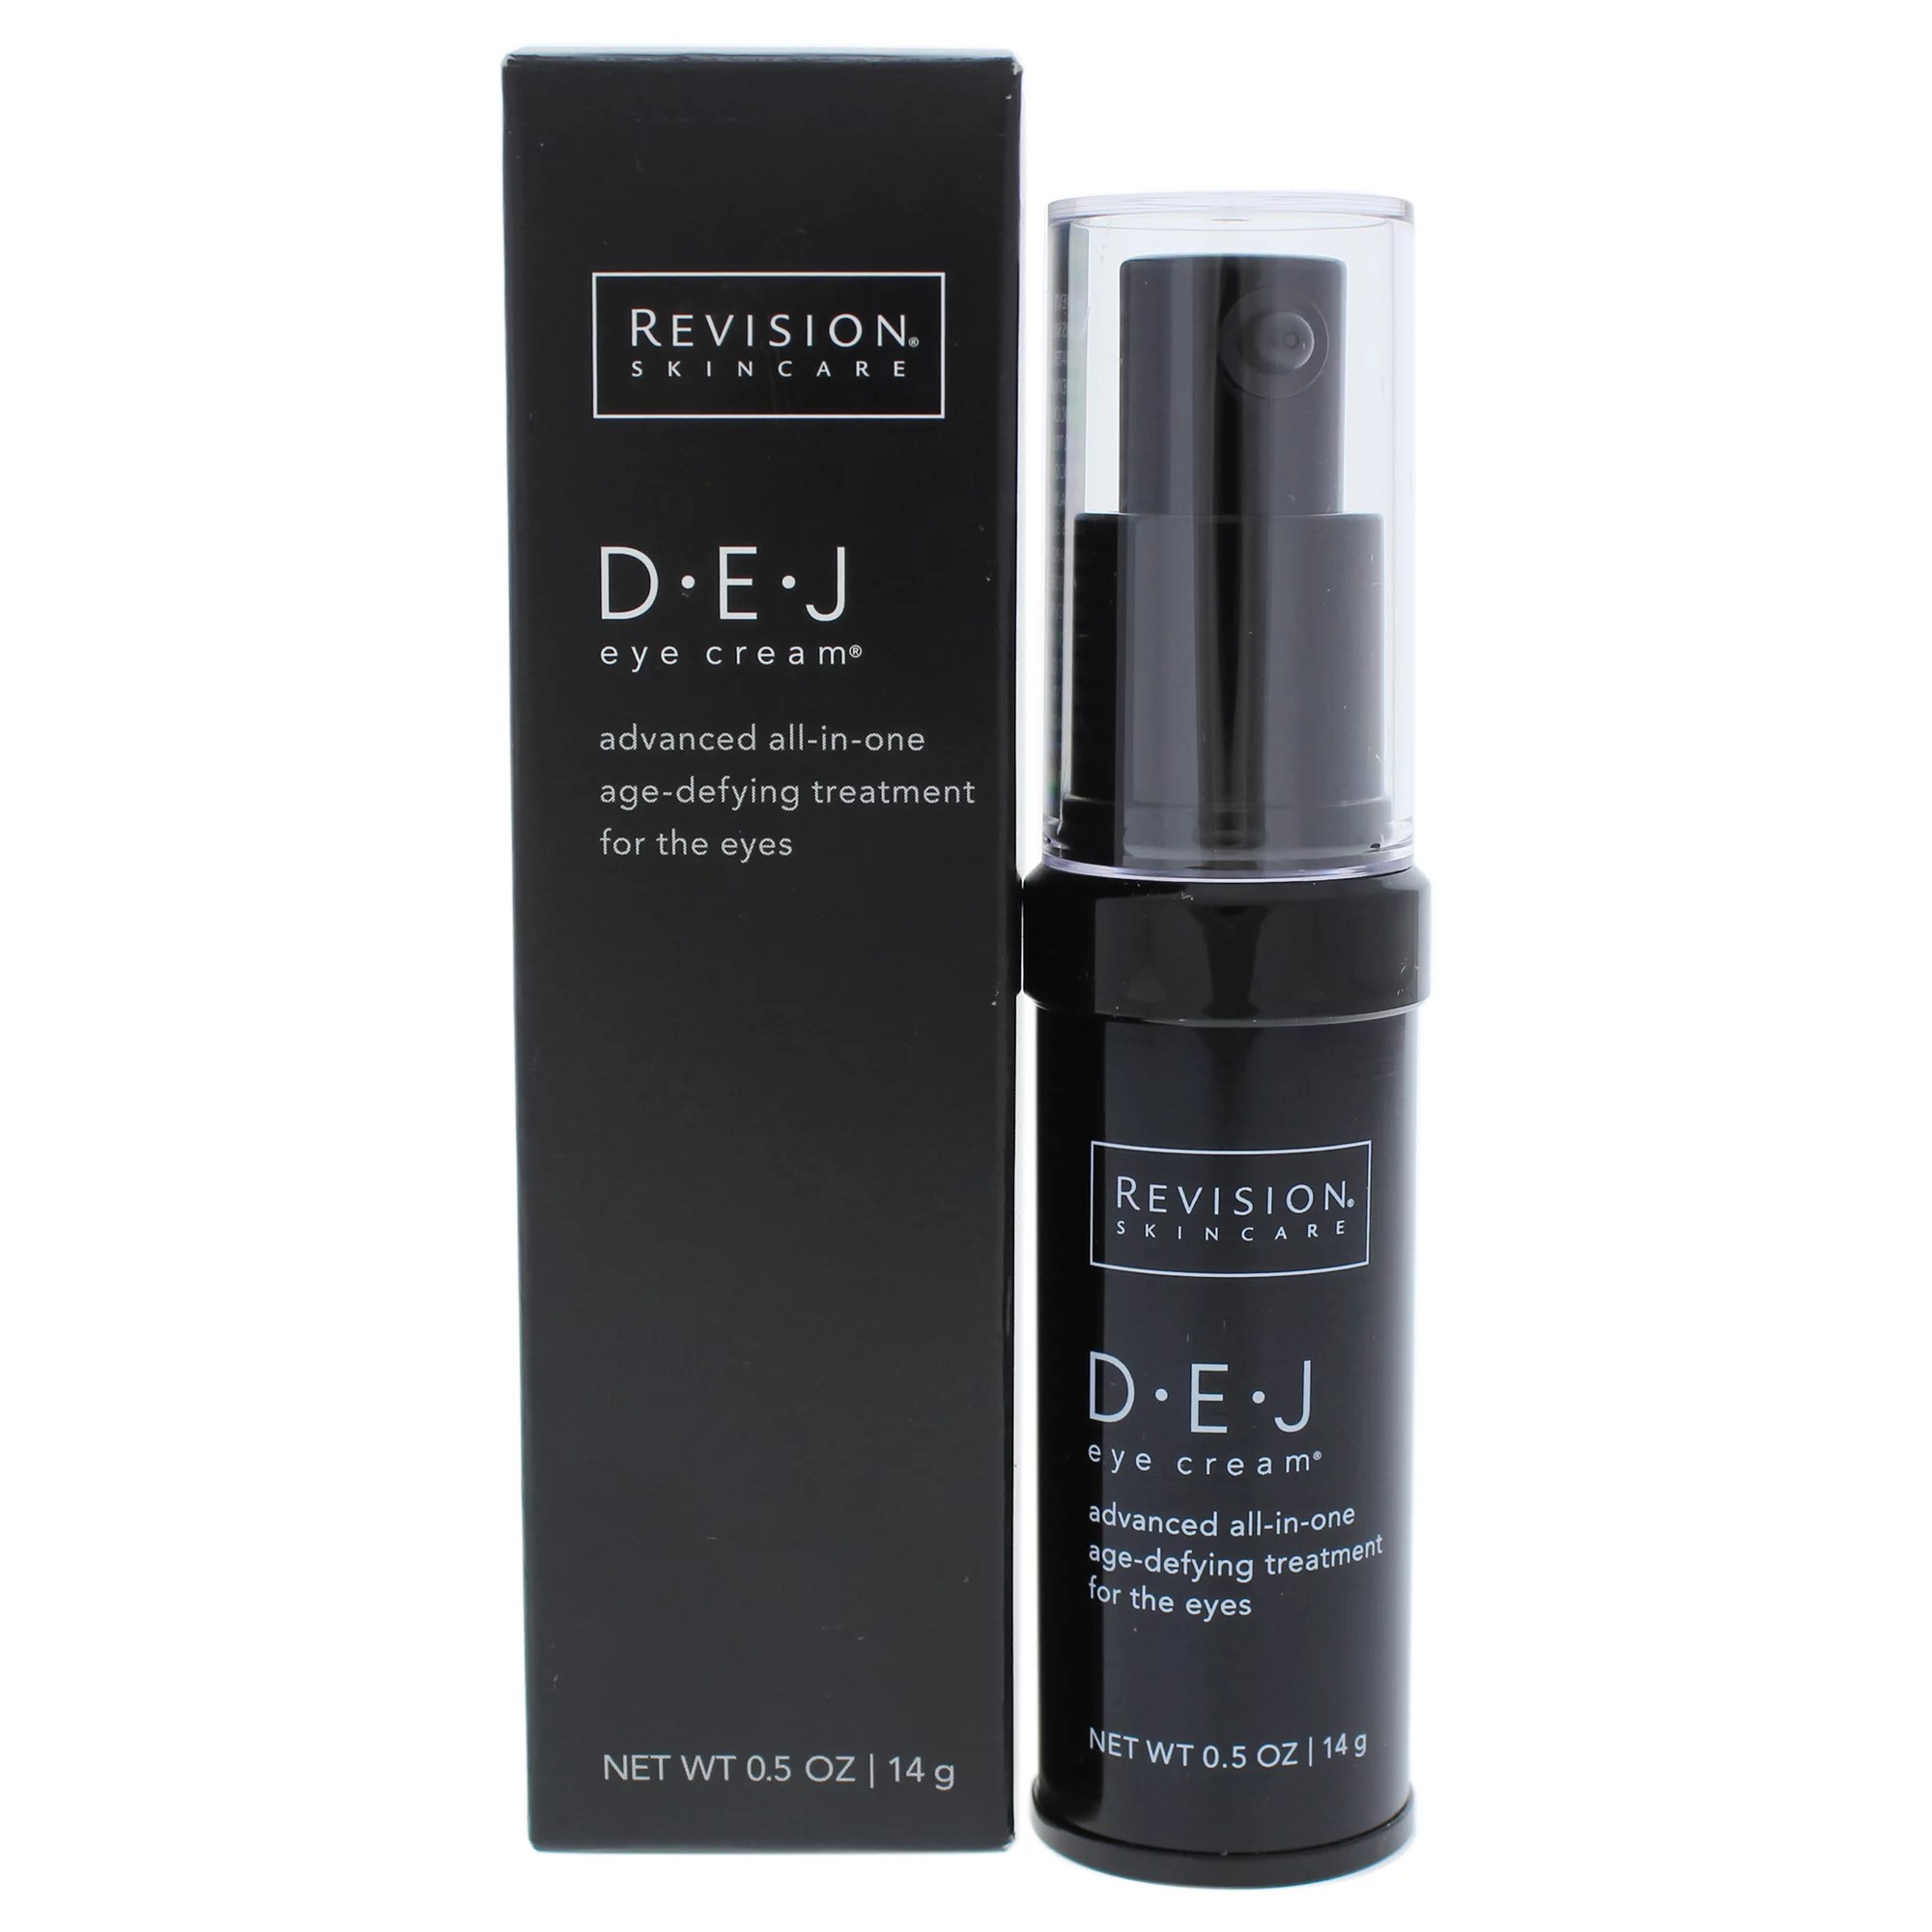 ( Value) Revision D.E.J Eye Cream With Pump, 0.5 Oz